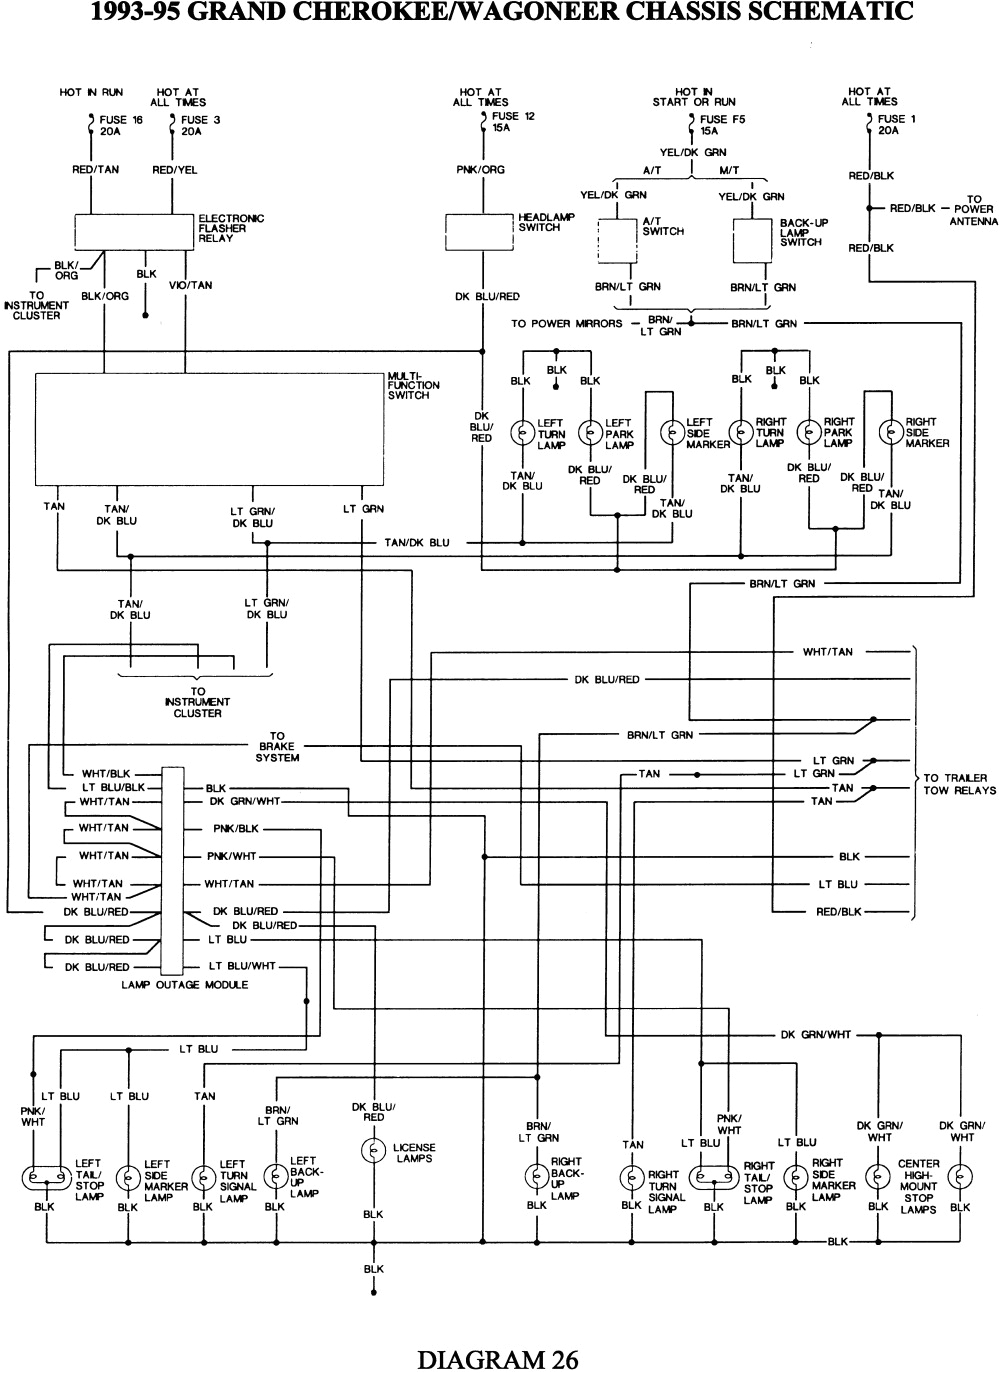 dimmer switch 2001 jeep cherokee engine diagram wiring diagram mega 1196 jeep cherokee dash wiring wiring